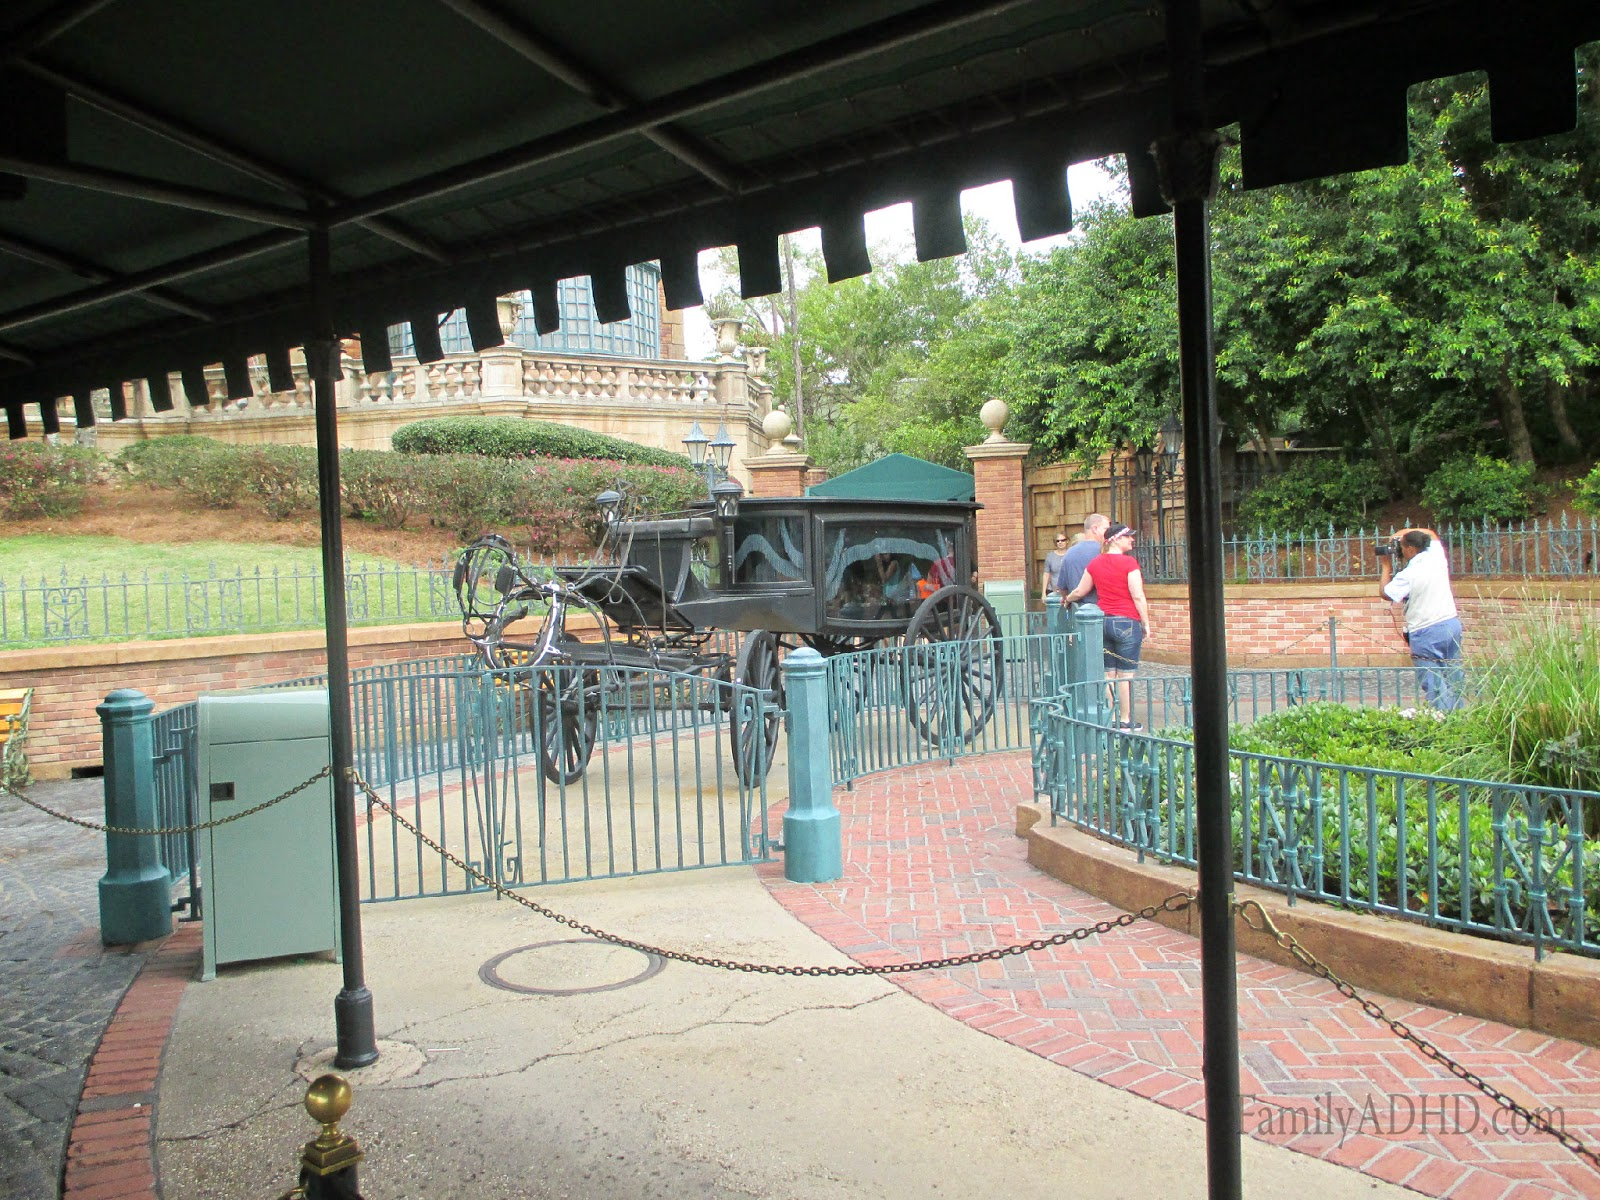 orlando family travel guide 2015 haunted mansion tips & review